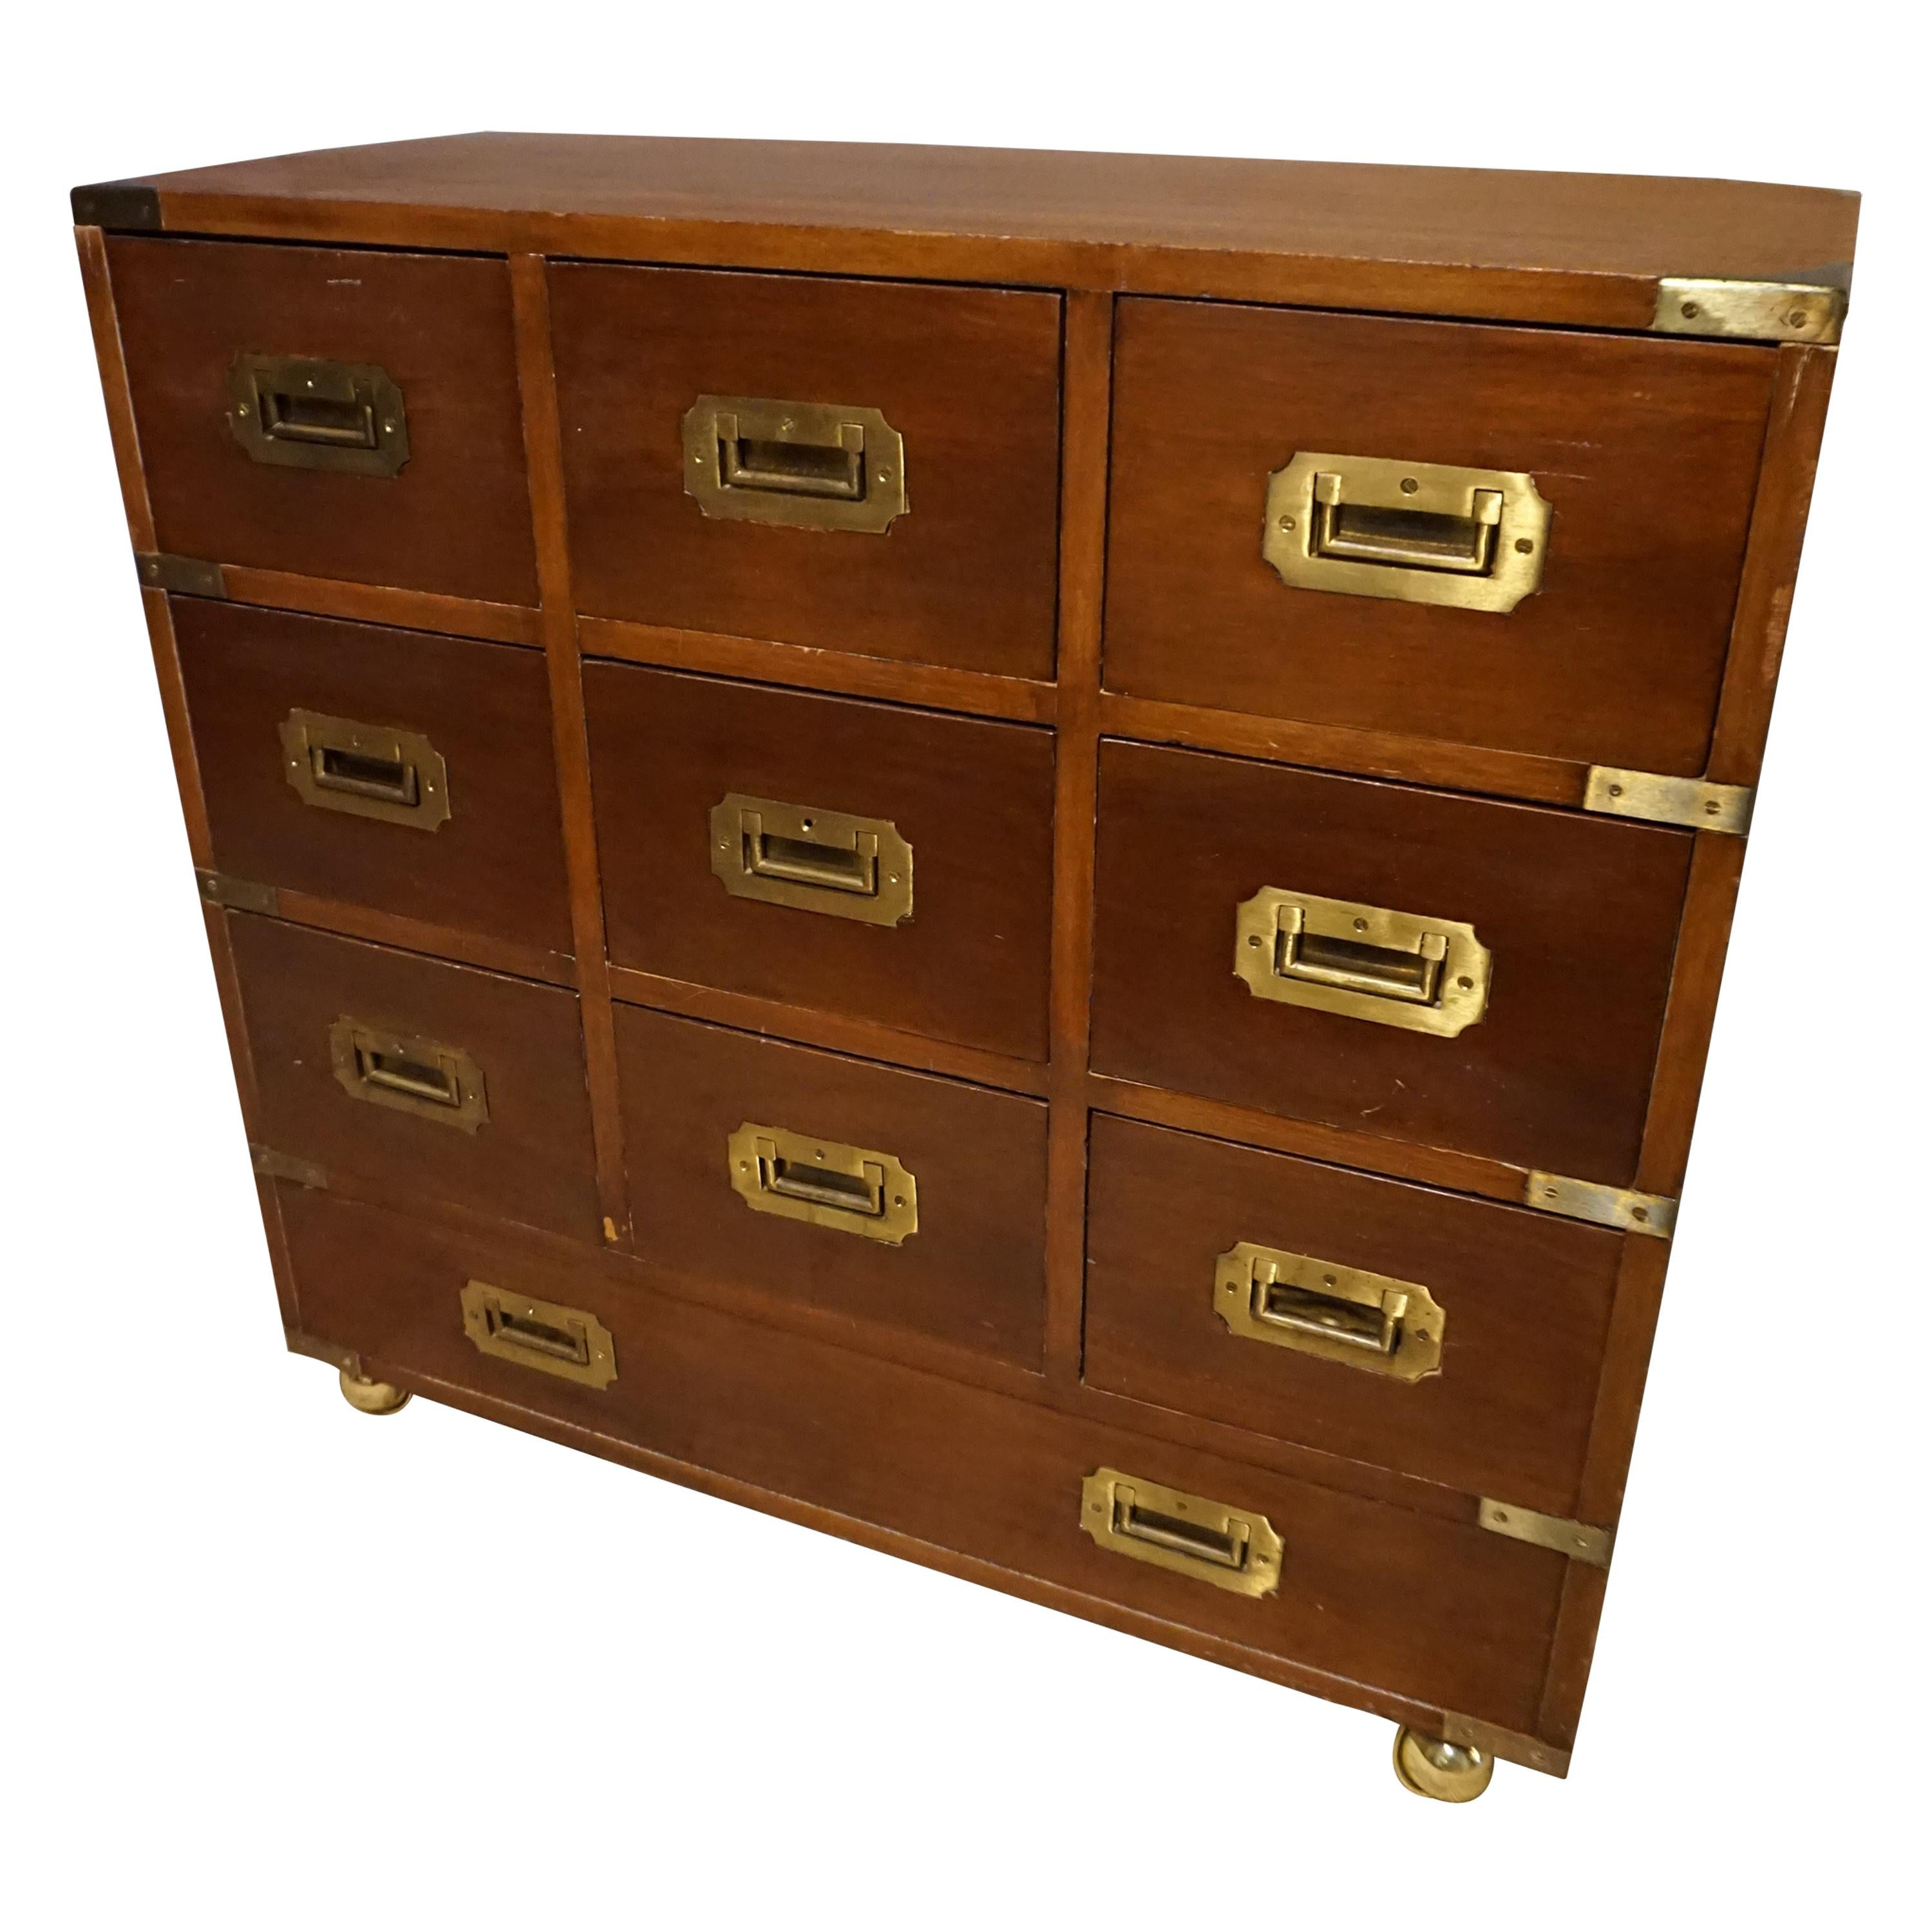 Mahogany British Campaign Chest with Brass Hardware and Multiple Drawers